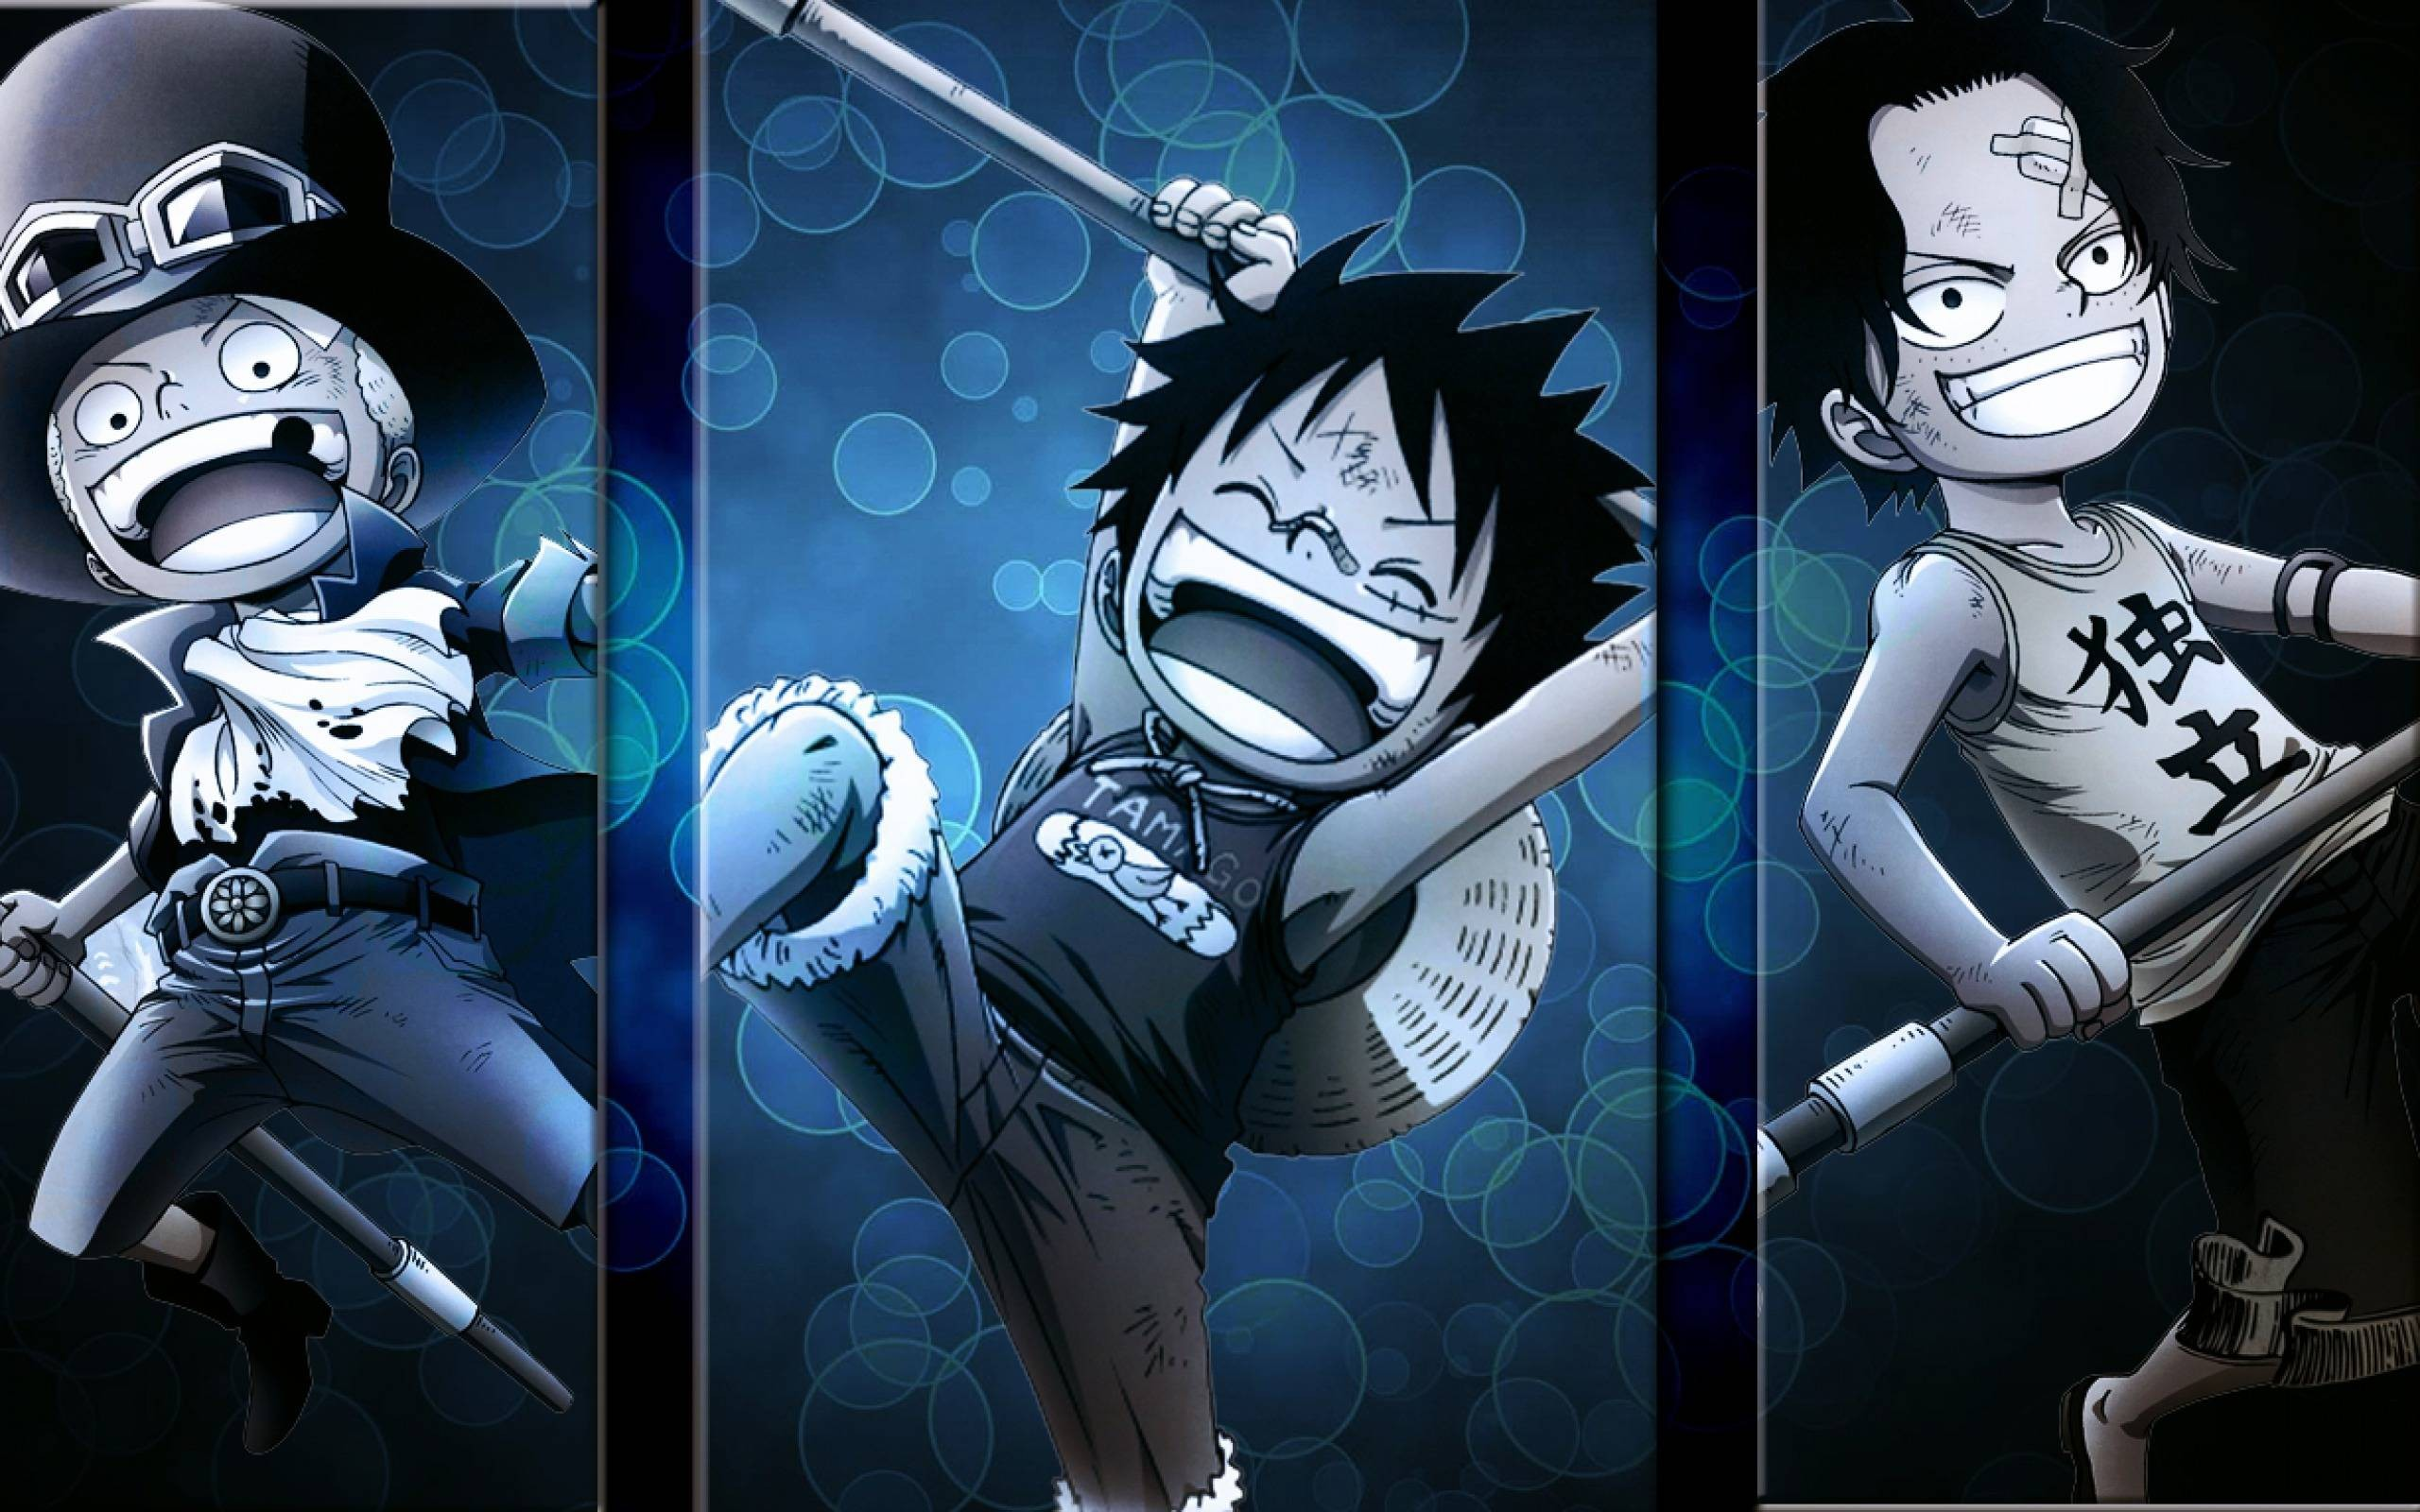 2560x1600 one piece new world sabo hd desktop background wallpapers 10576 hd